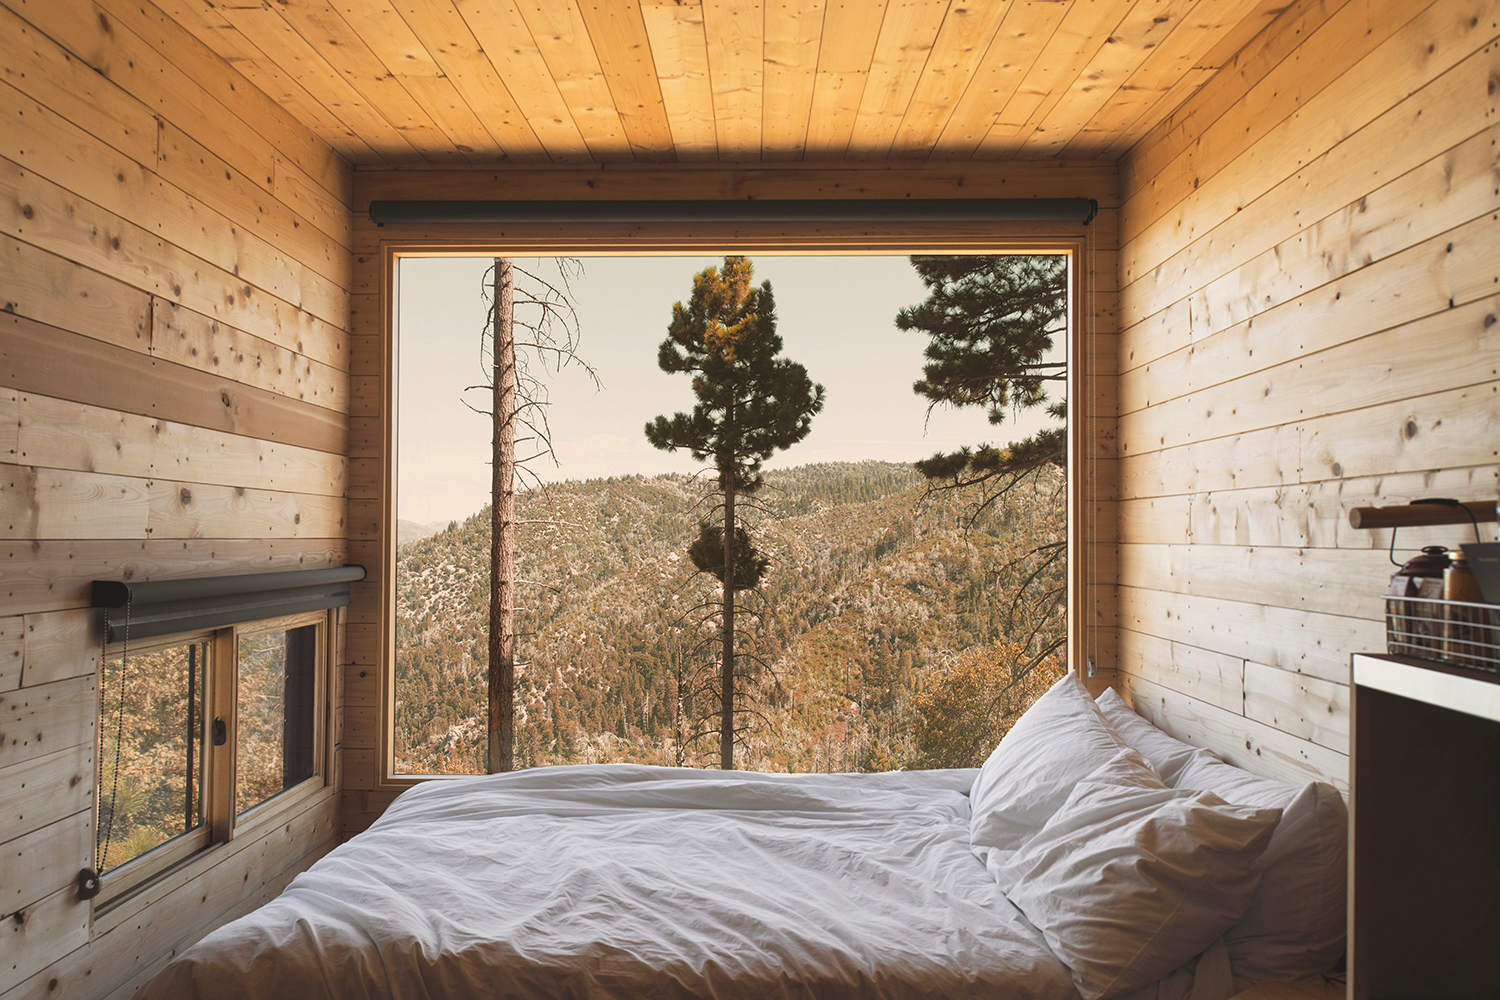 02getaway-bigbear-cabin-glamping-outdoor-travel